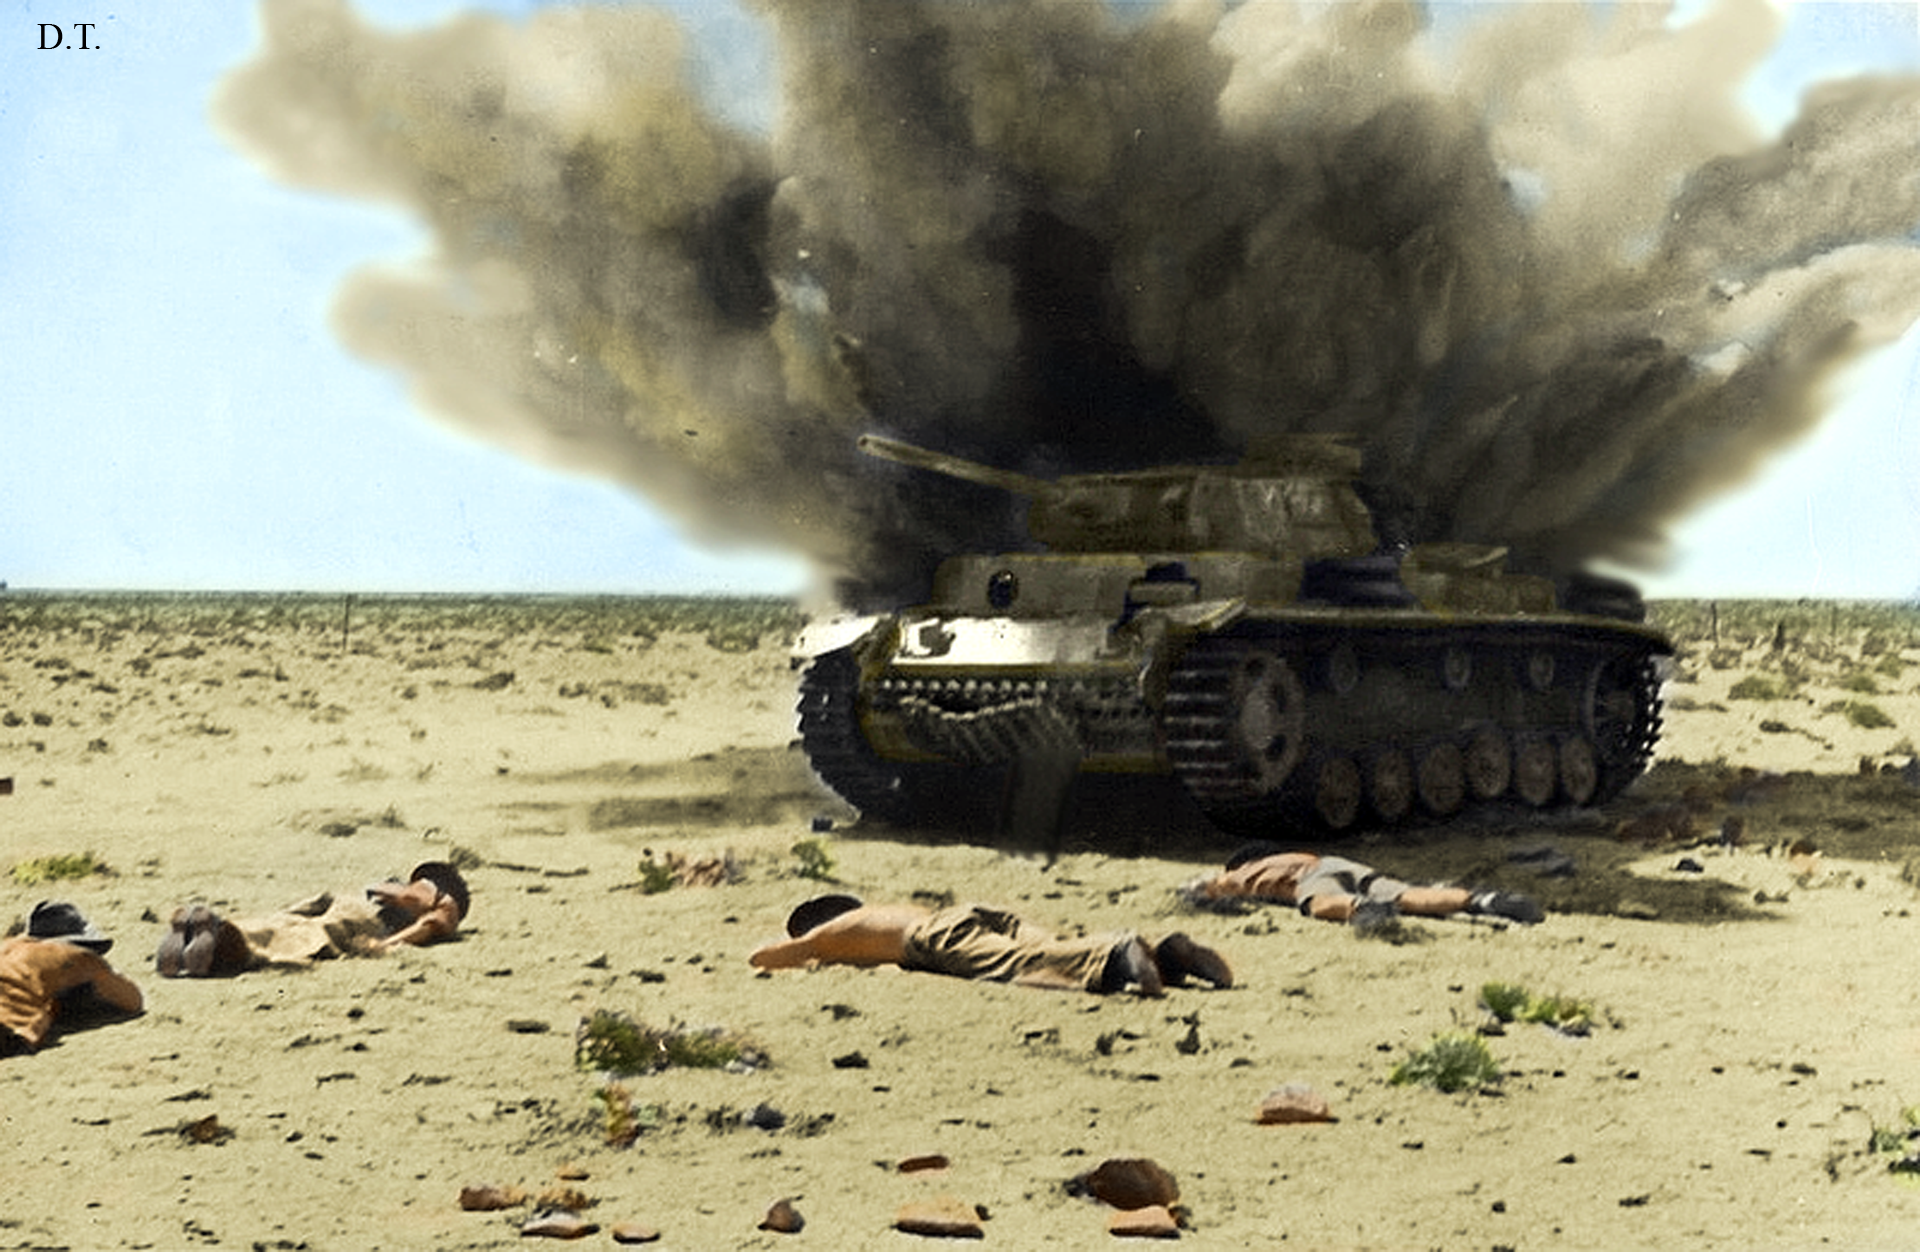 Destruction of Pz 3 near to Egypt  My colored picture